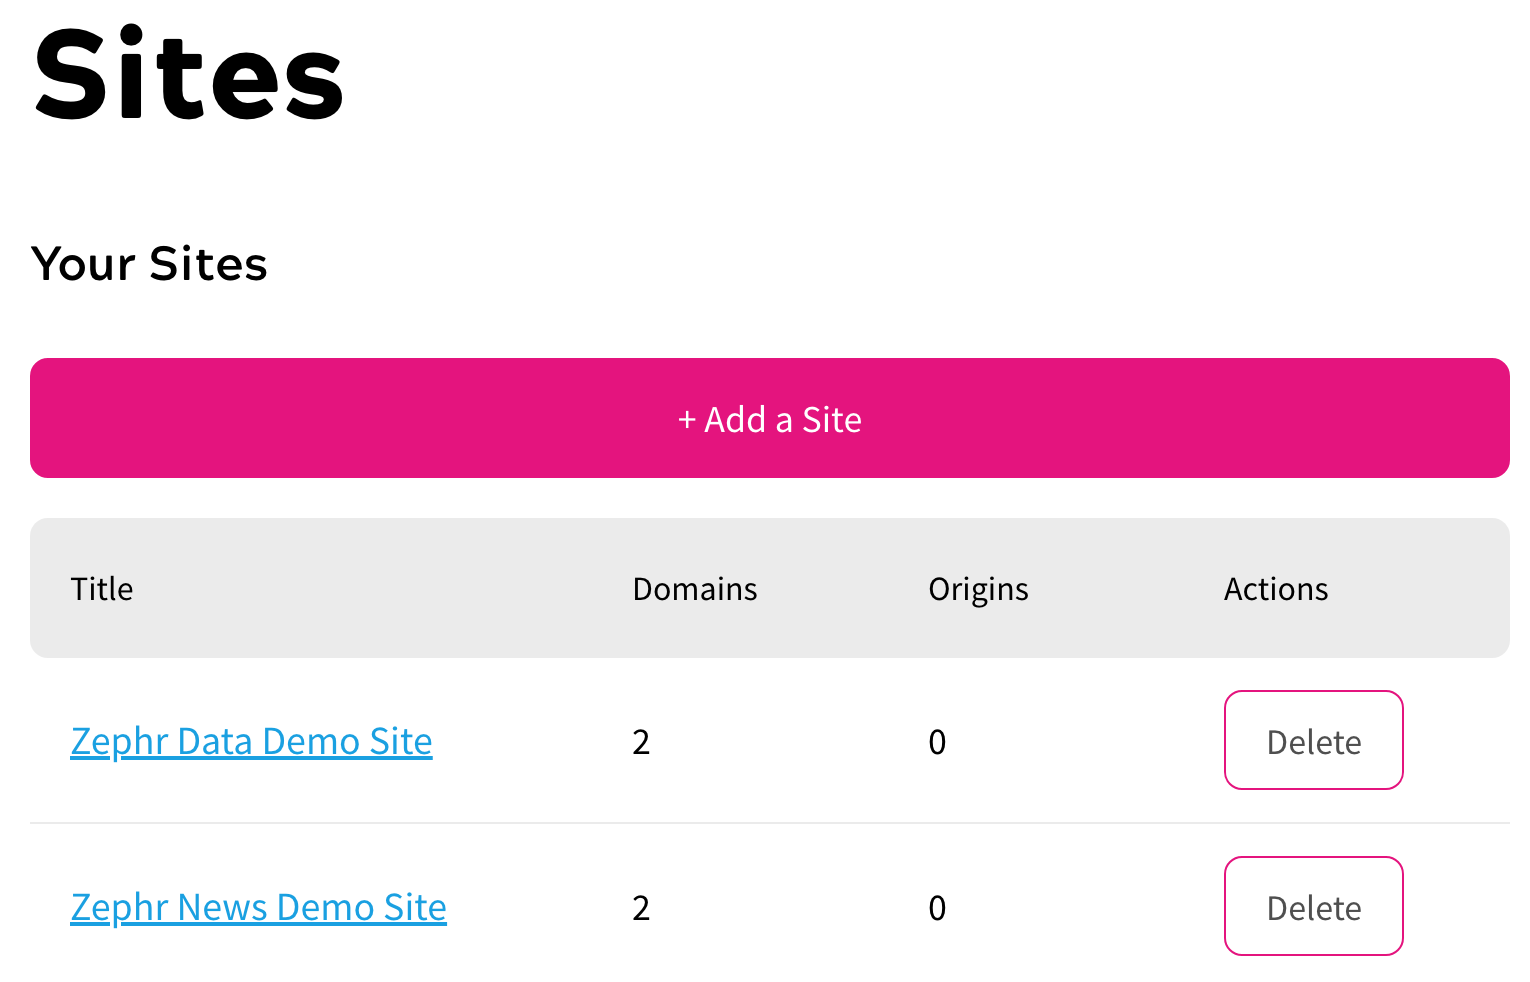 A list of two sites configured on Zephr